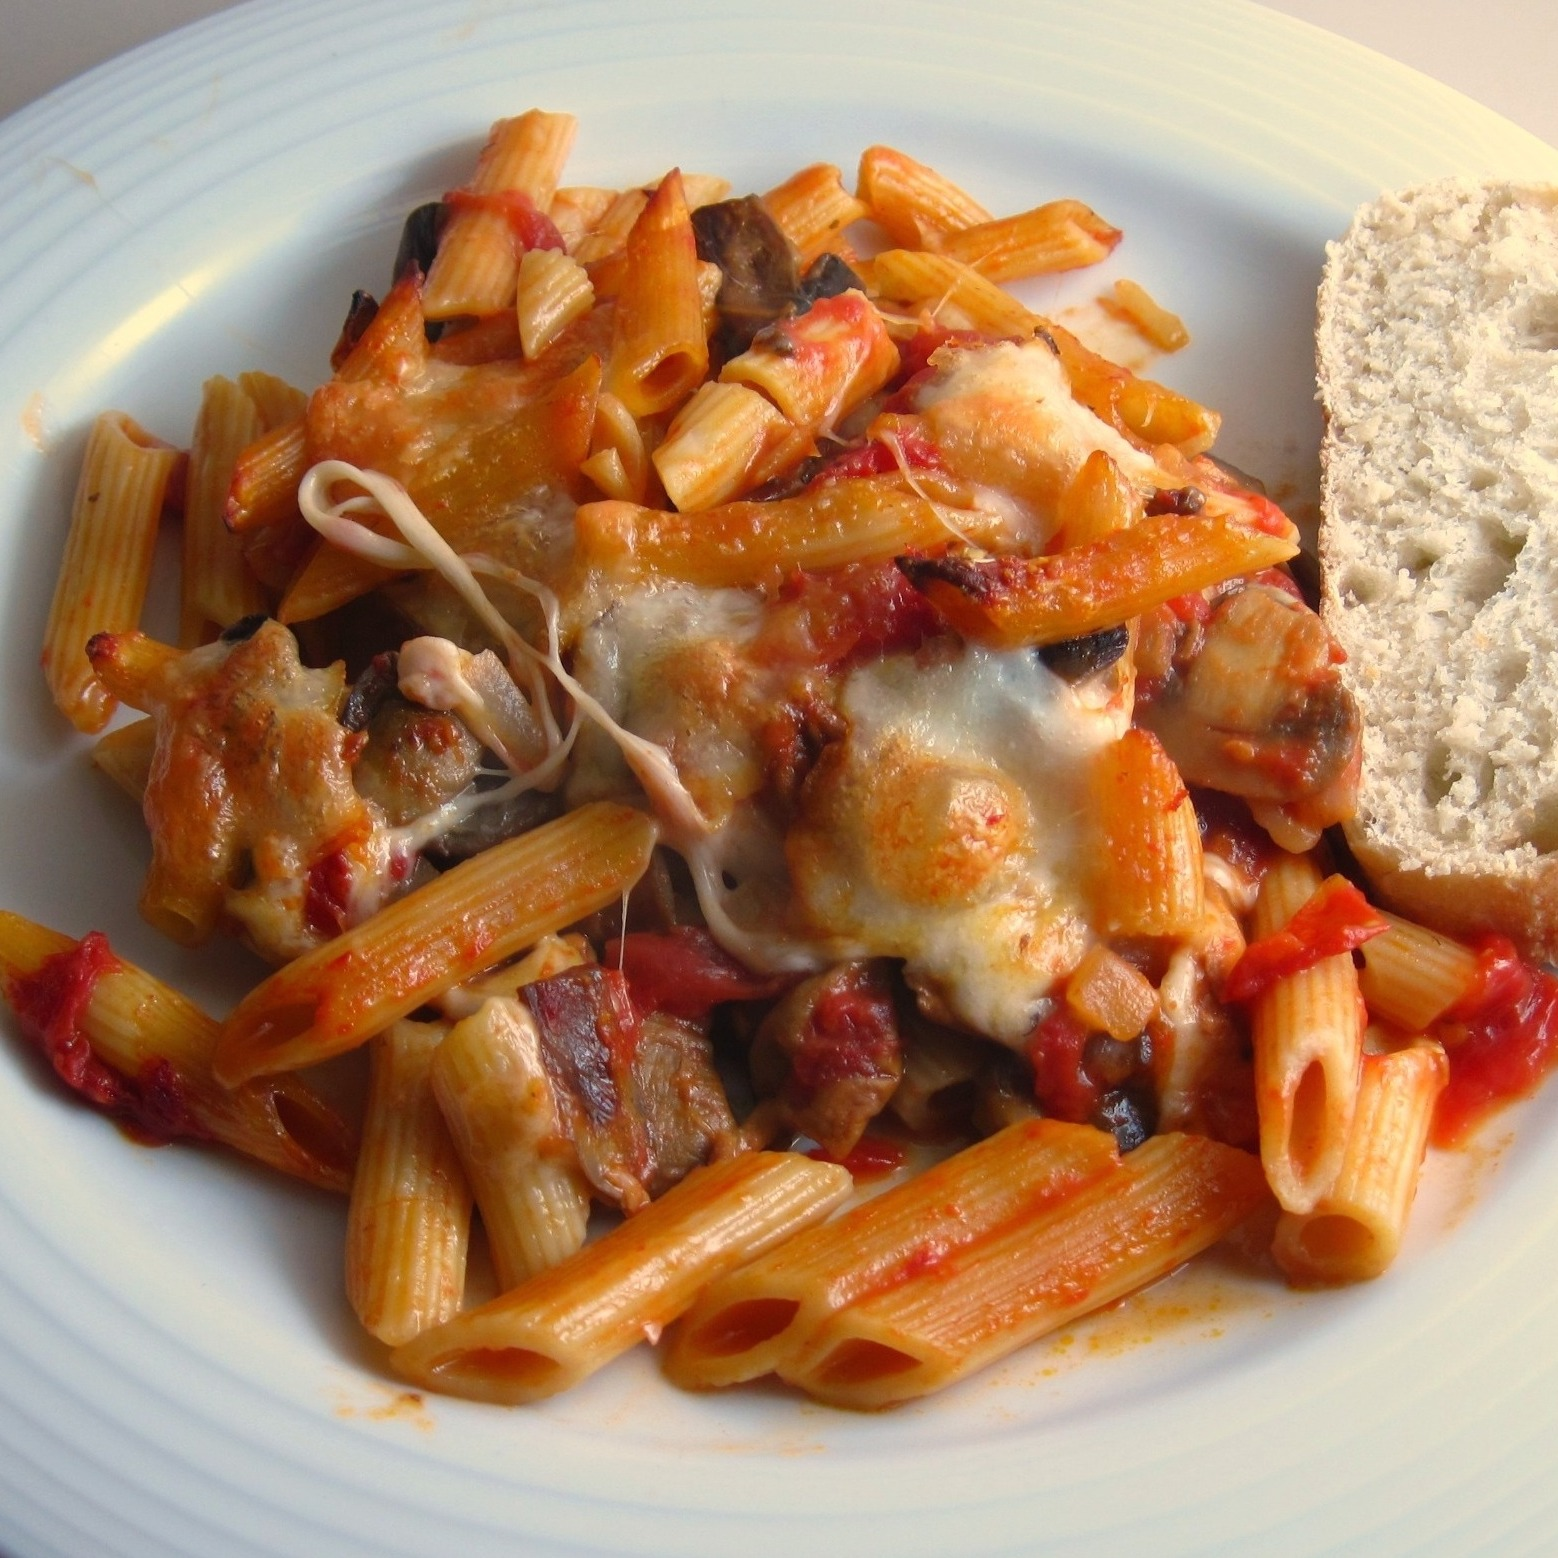 Baked Penne with Mushrooms and Mozzarella